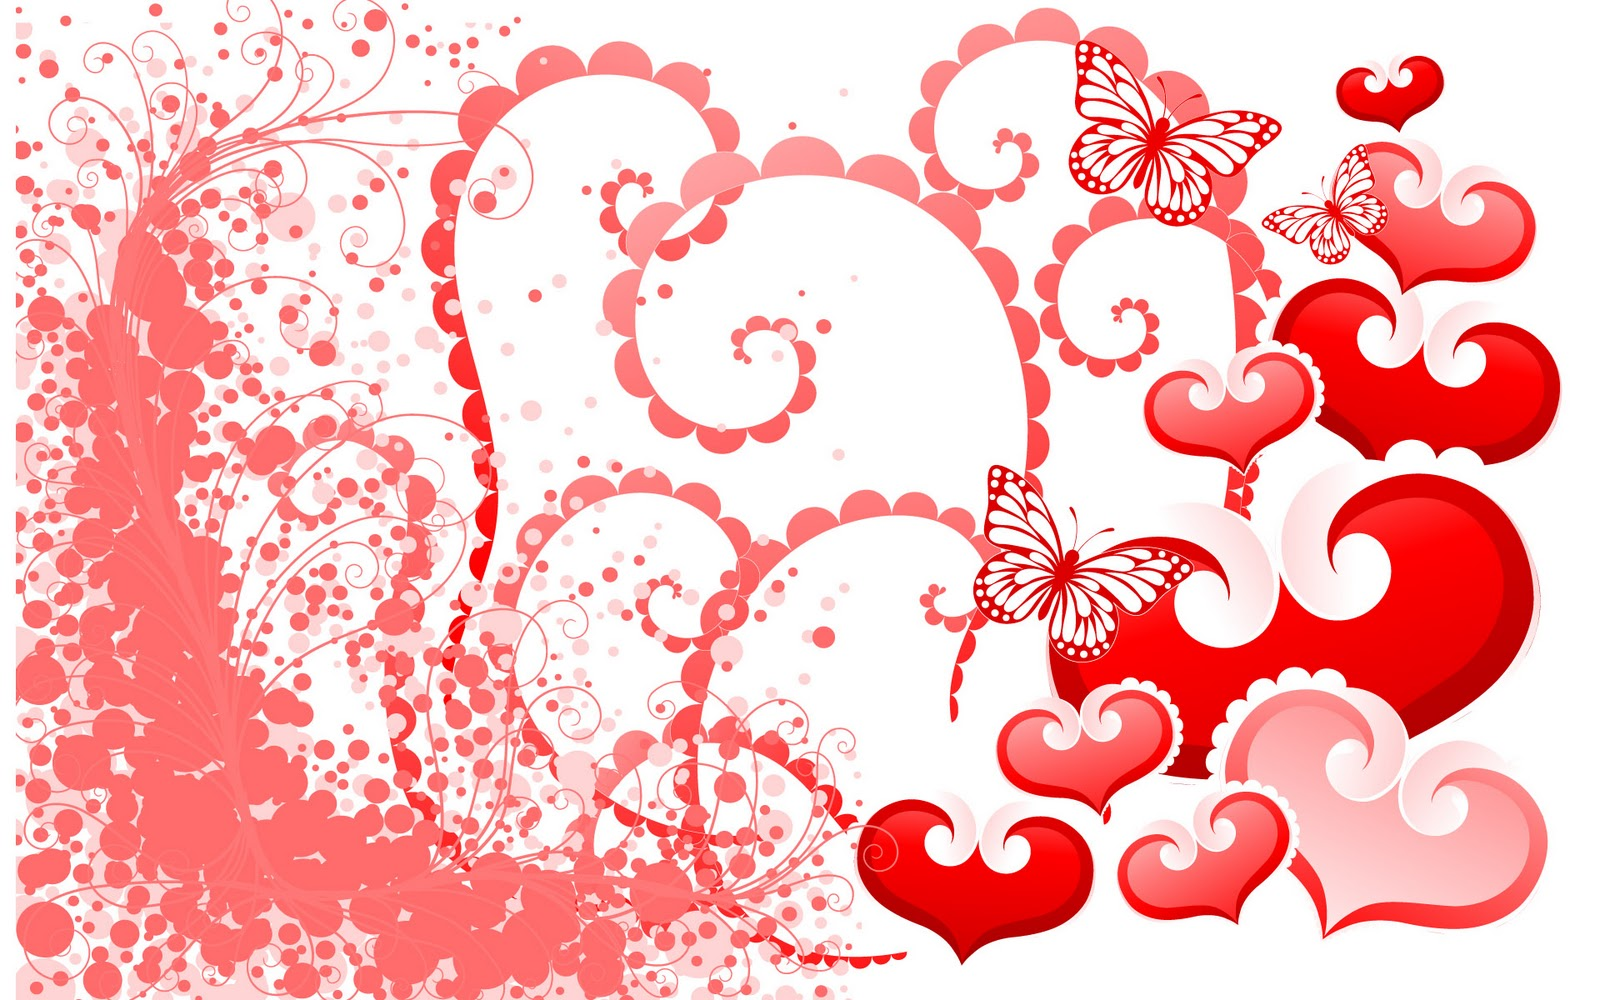 Wallpapers Picture Free Download Lover Day Greeting Images Free